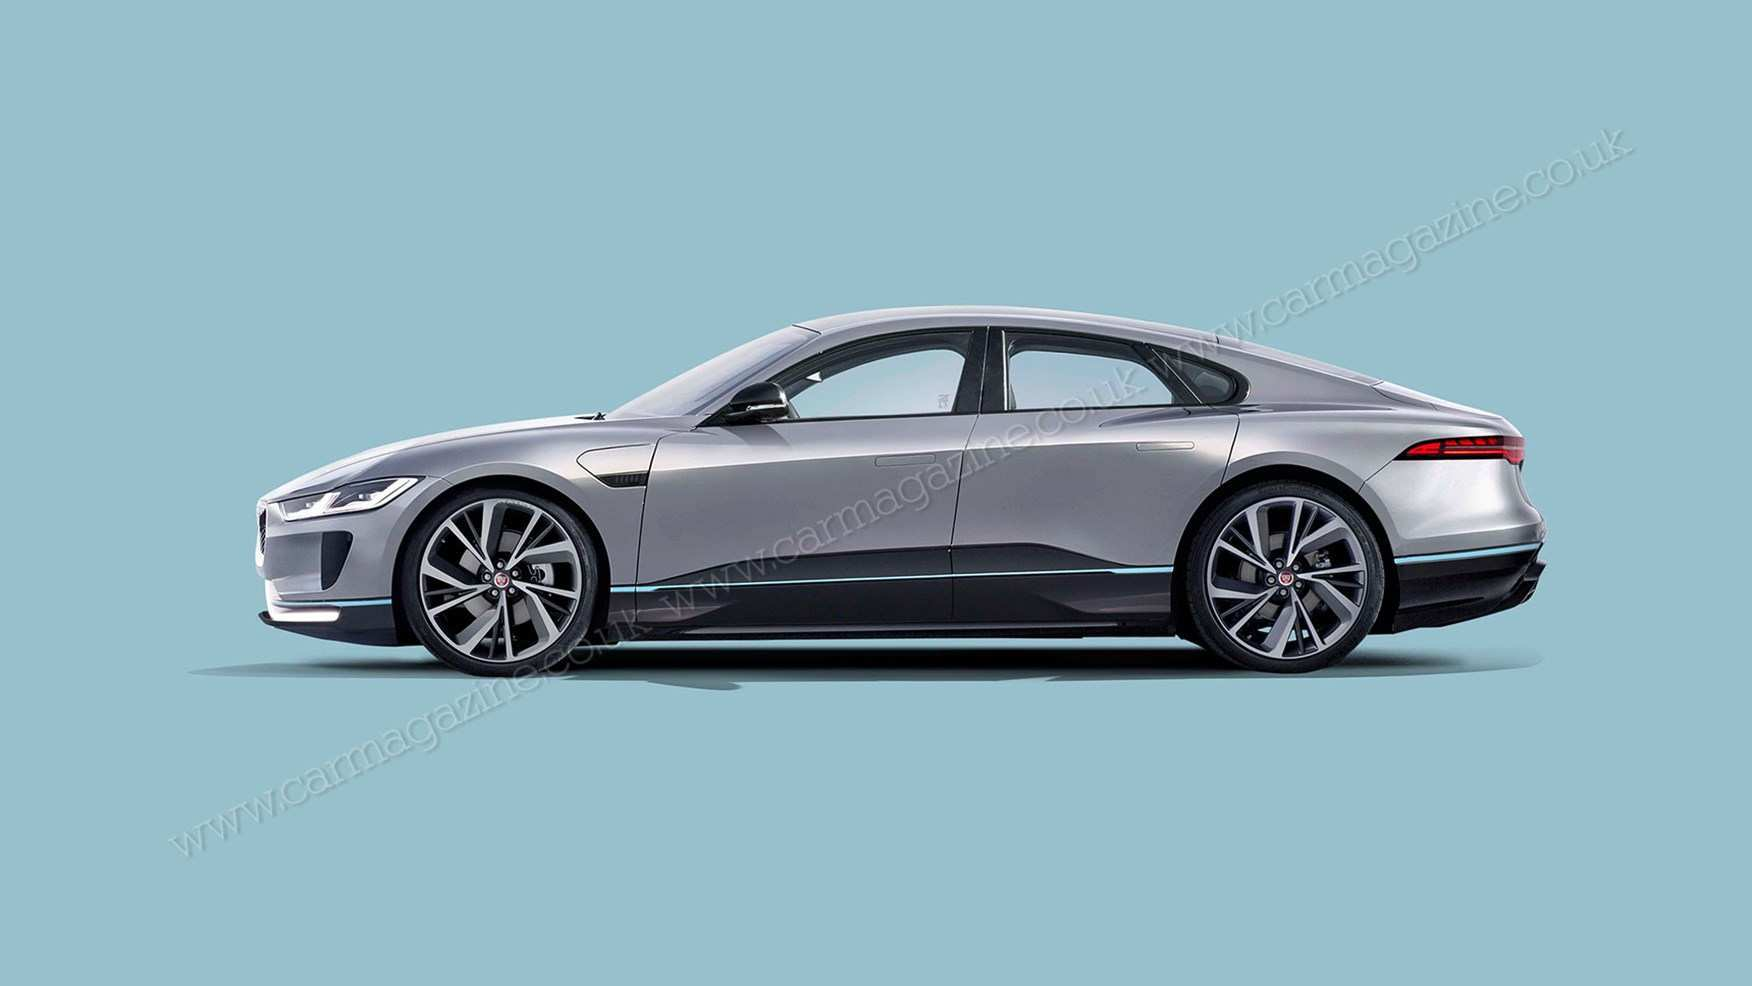 81 Gallery of Jaguar New Xj 2020 New Review by Jaguar New Xj 2020